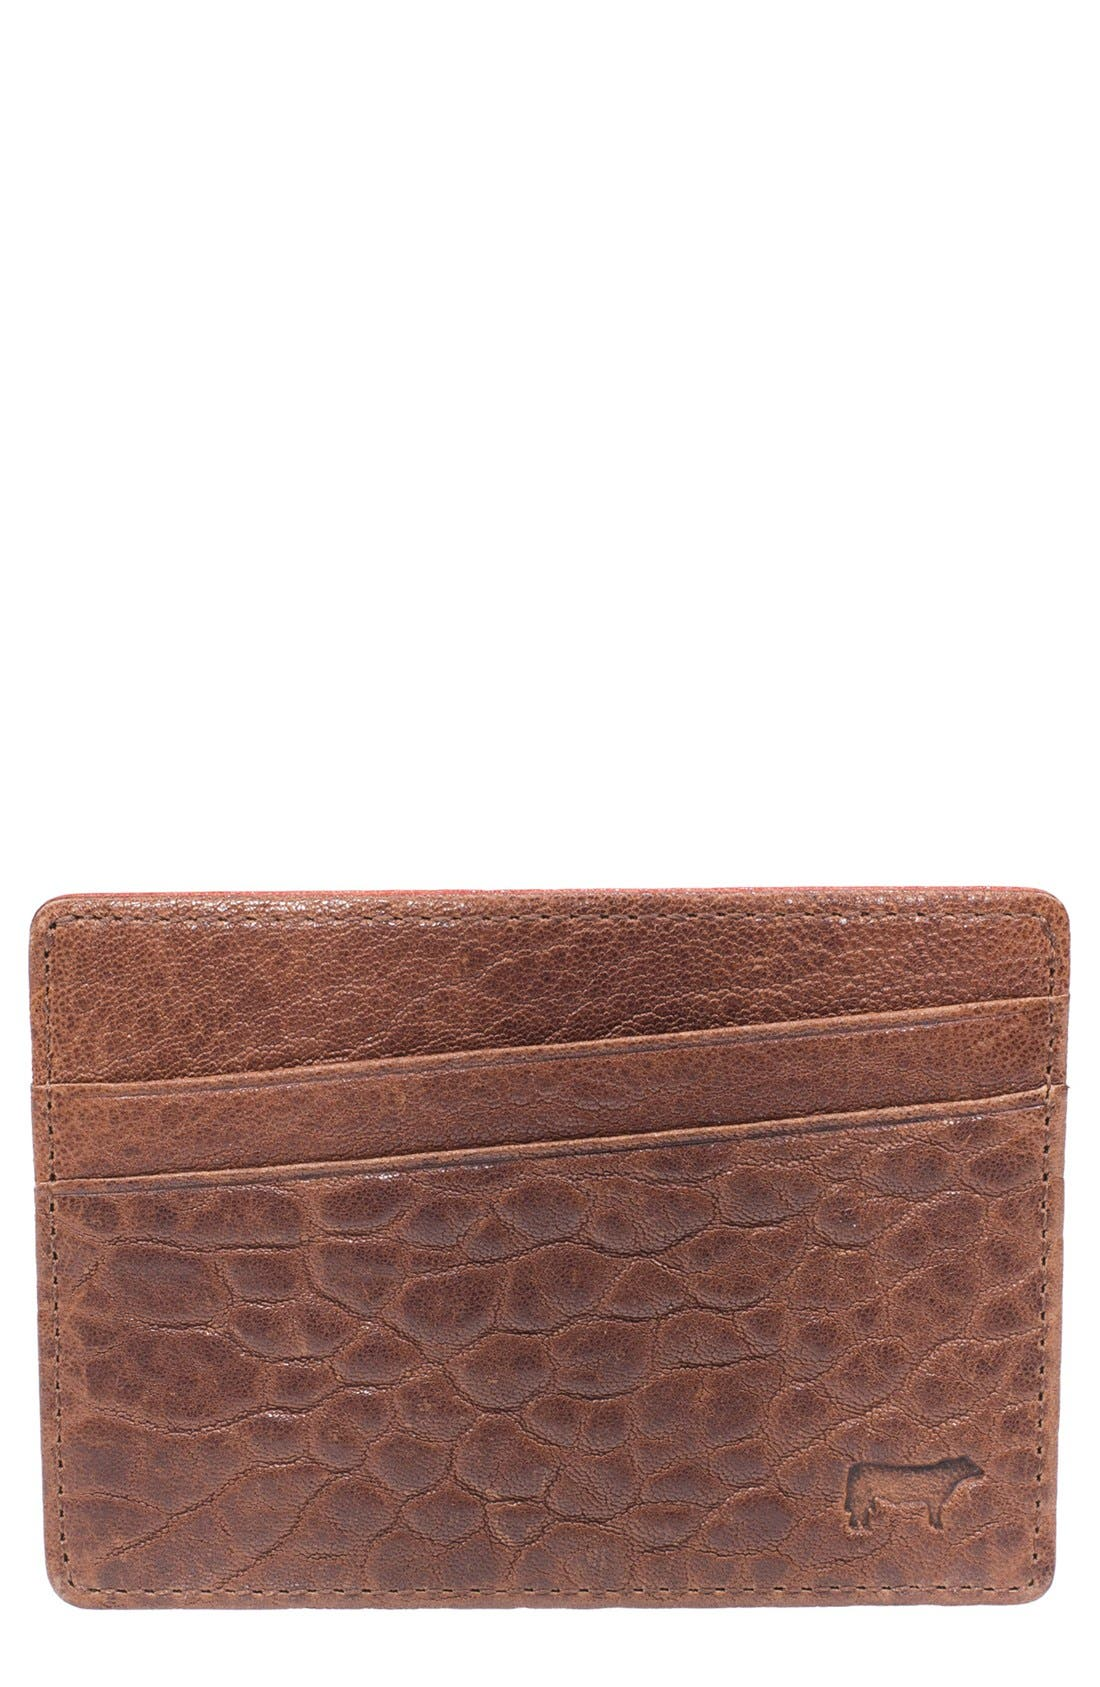 Main Image - Will Leather Goods 'Quip' Leather Card Case